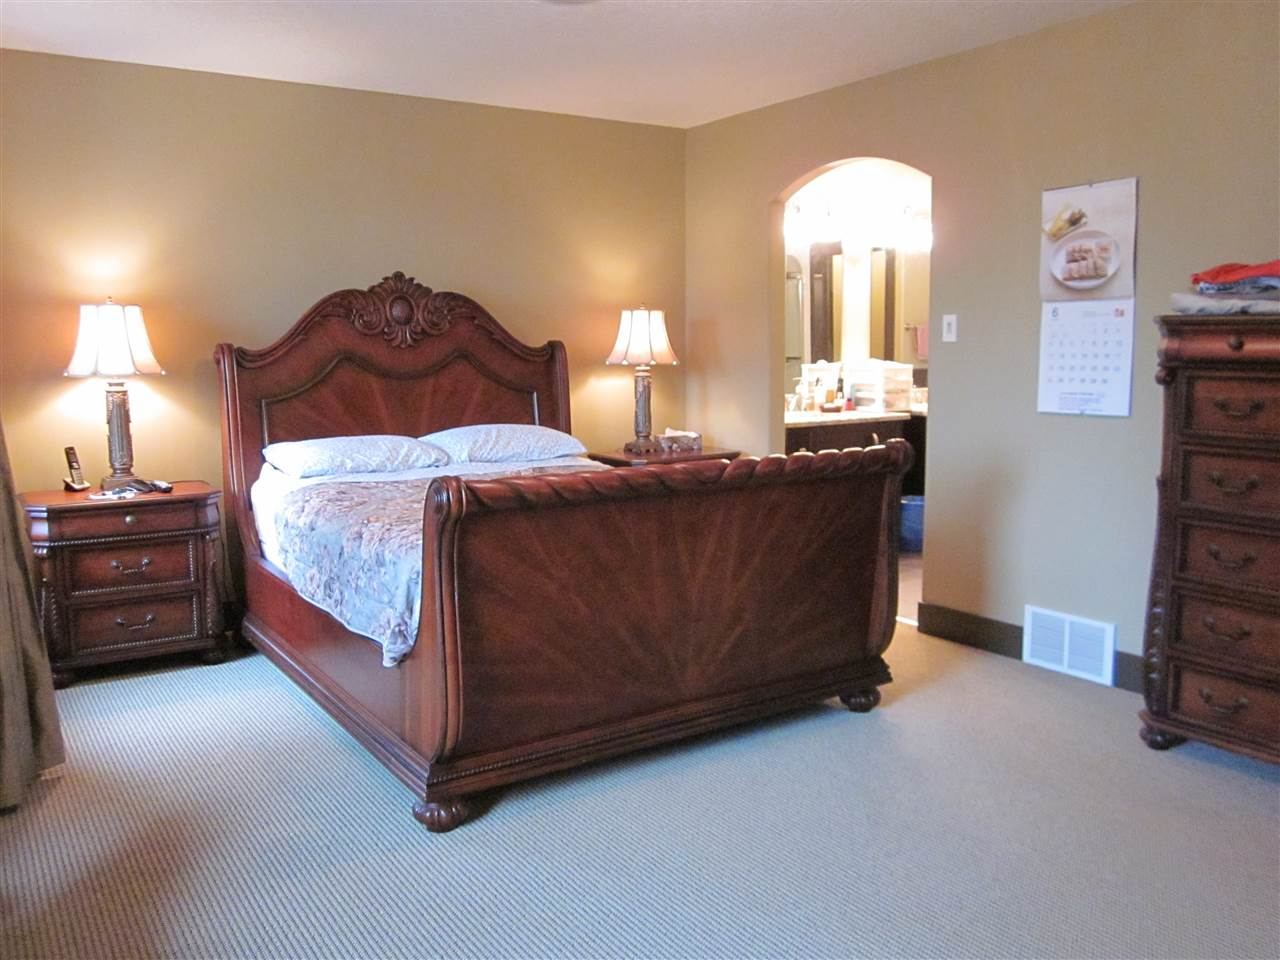 Large master bedroom has 5 pcs. ensuite and walk-in closet.